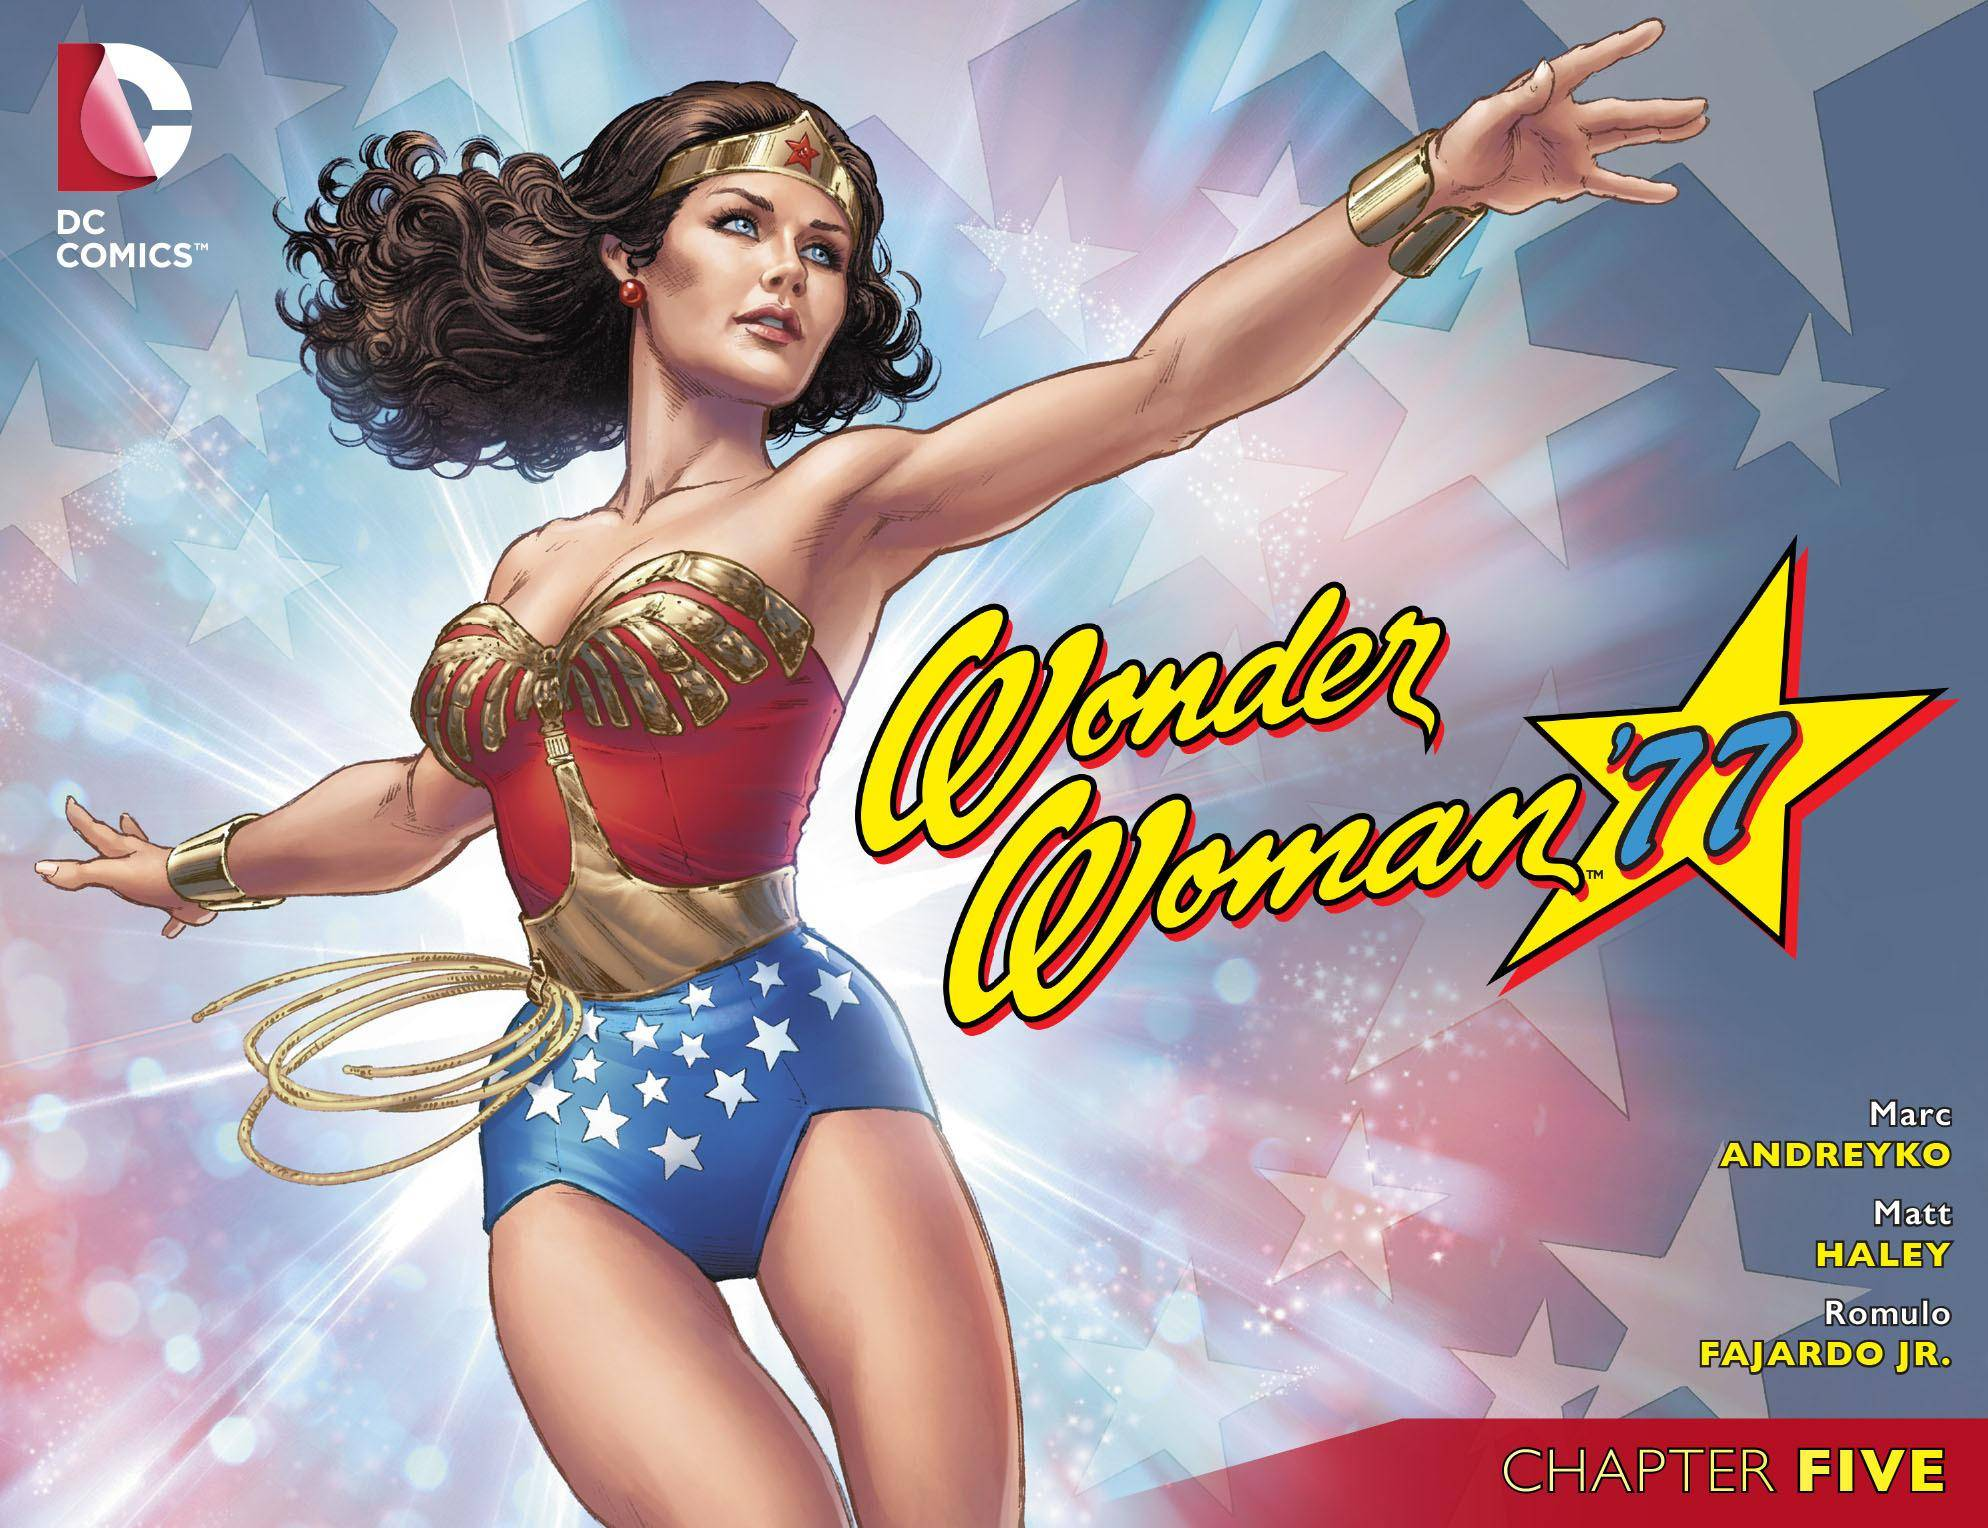 0-Day 2015 4 15 - Wonder Woman 77 Vol01 005 2015 HD Digital Thronn-Empire cbr